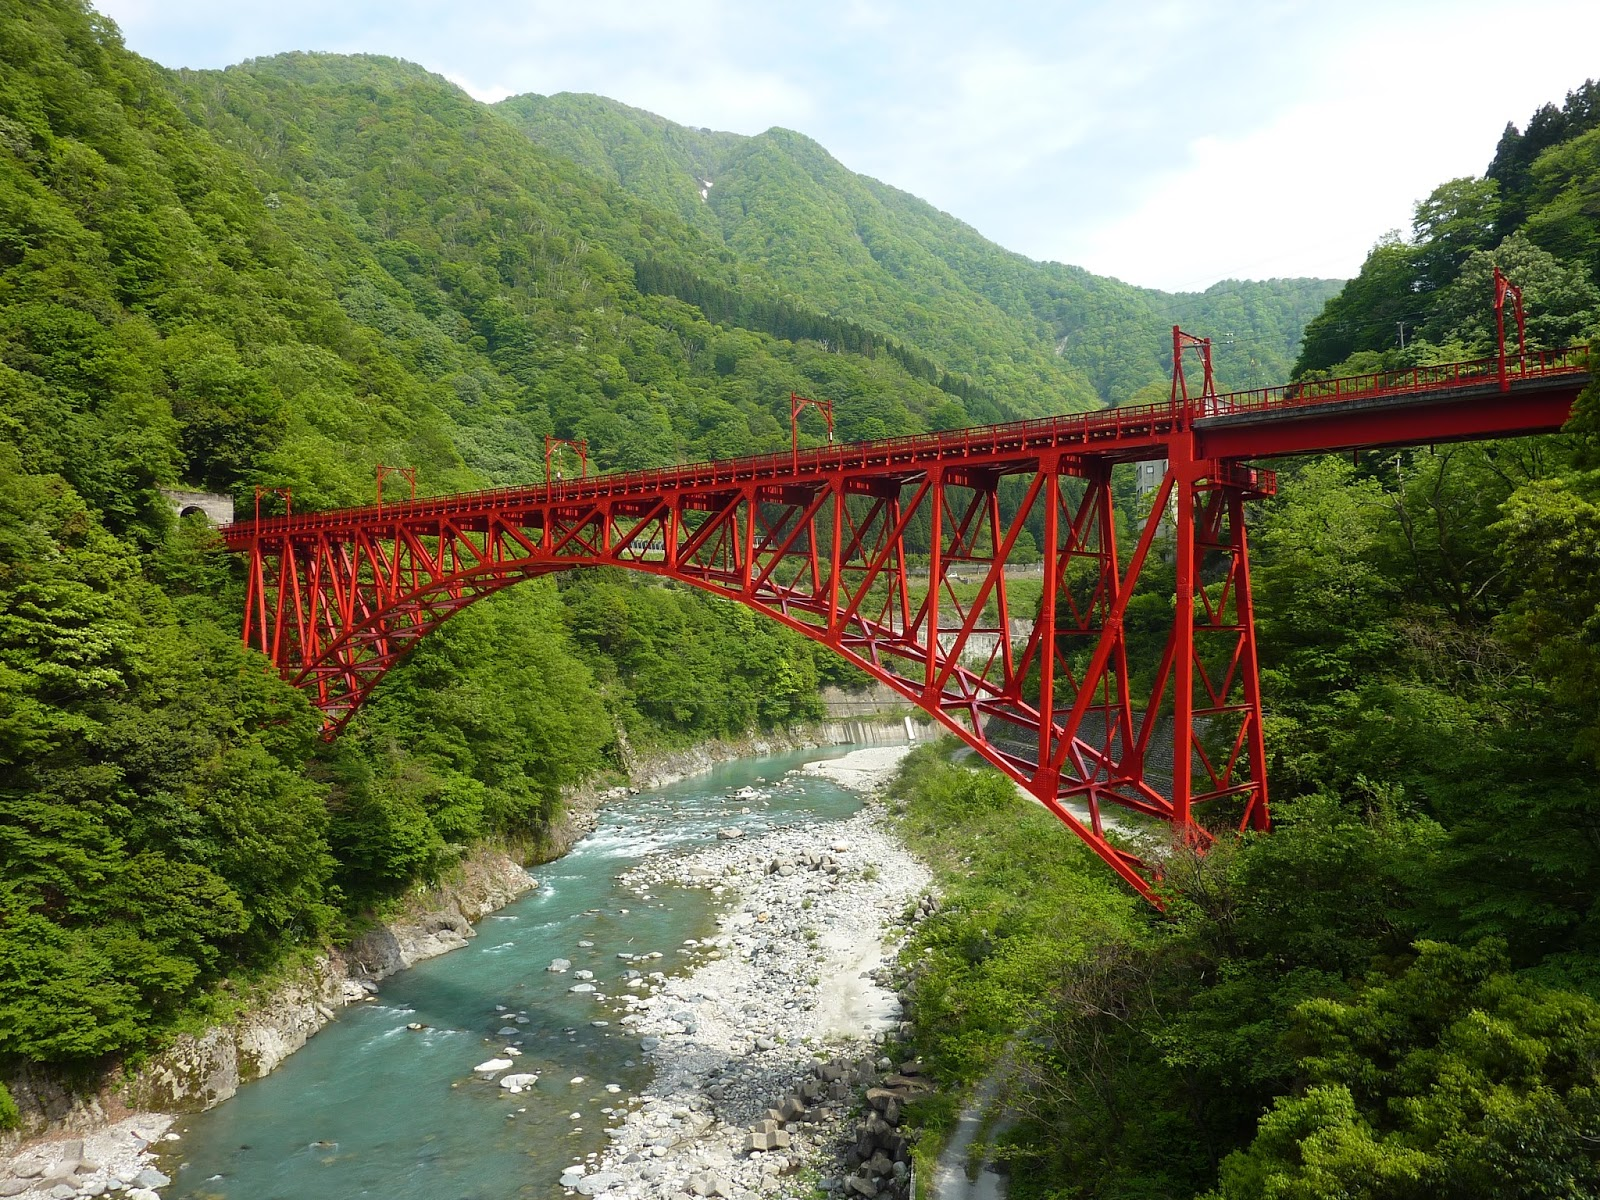 Kurobe Japan  city photos gallery : Trip to Japan: Day 8: Kurobe Gorge & Toyama